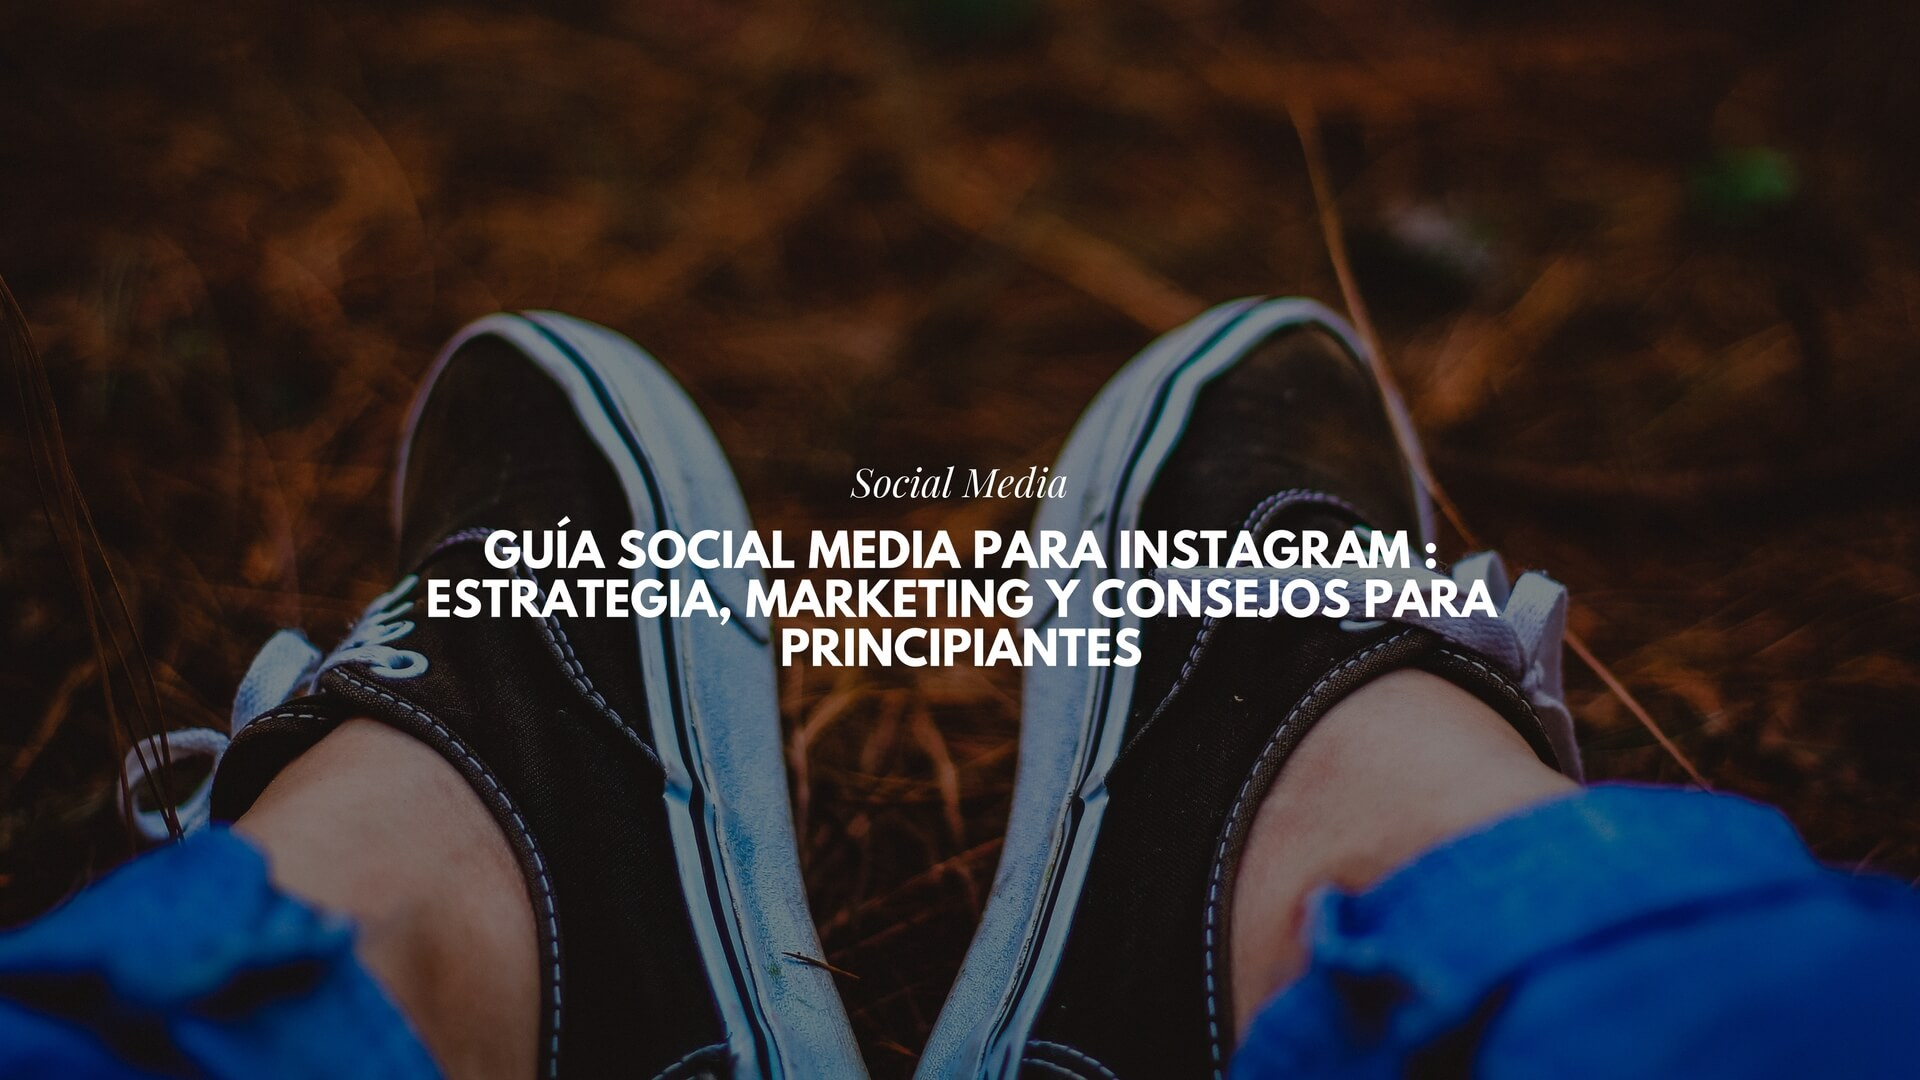 Guía Social Media para Instagram : estrategia, marketing y consejos para principiantes